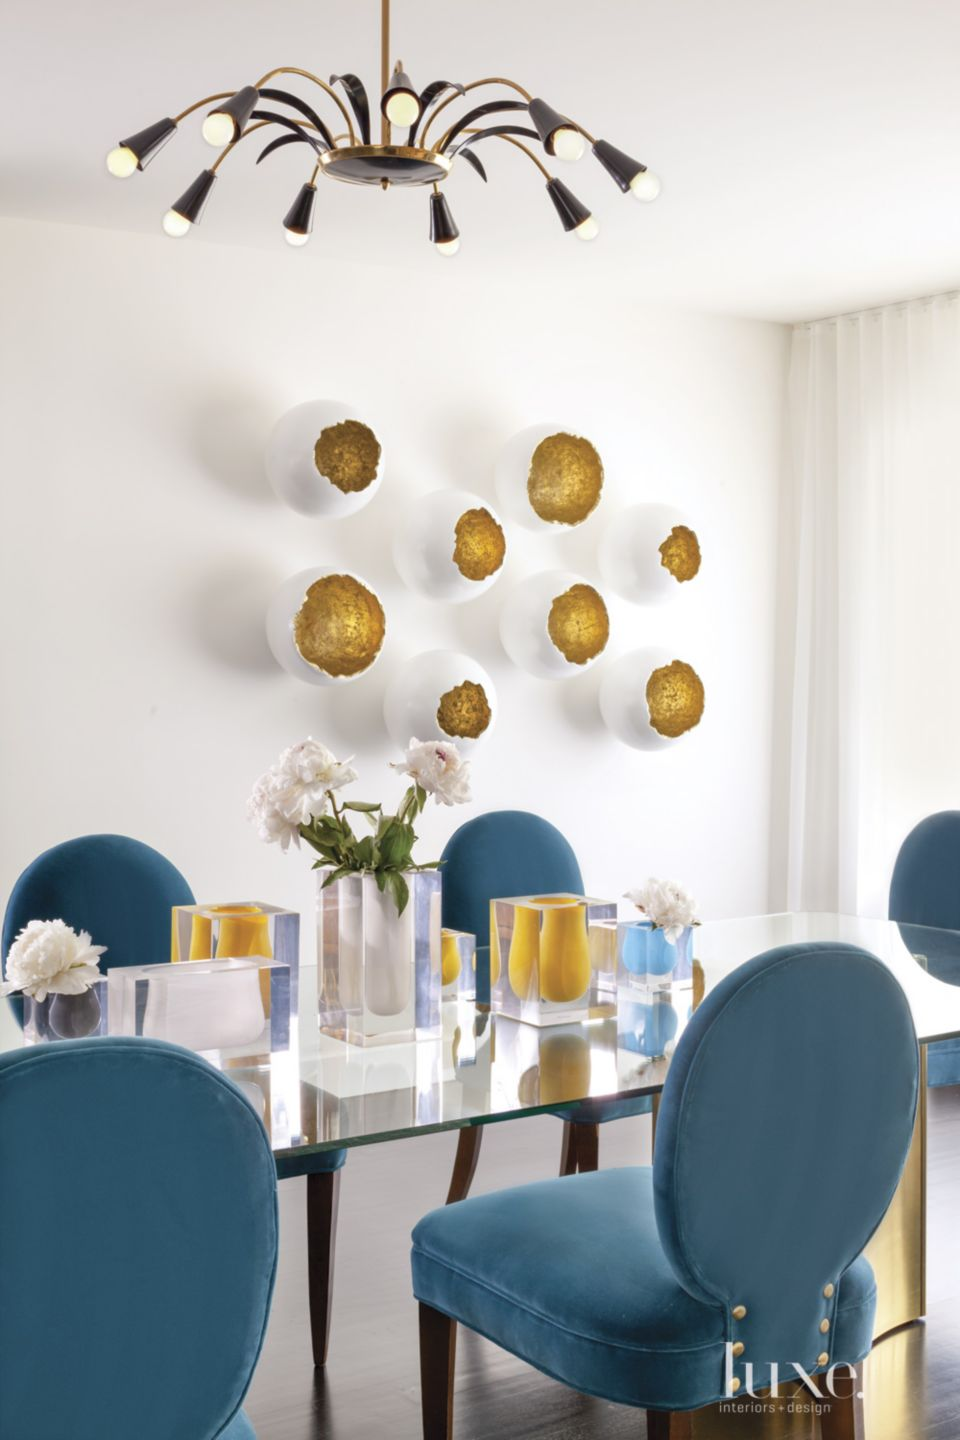 Modern Neutral Dining Room with Wall Sculptures